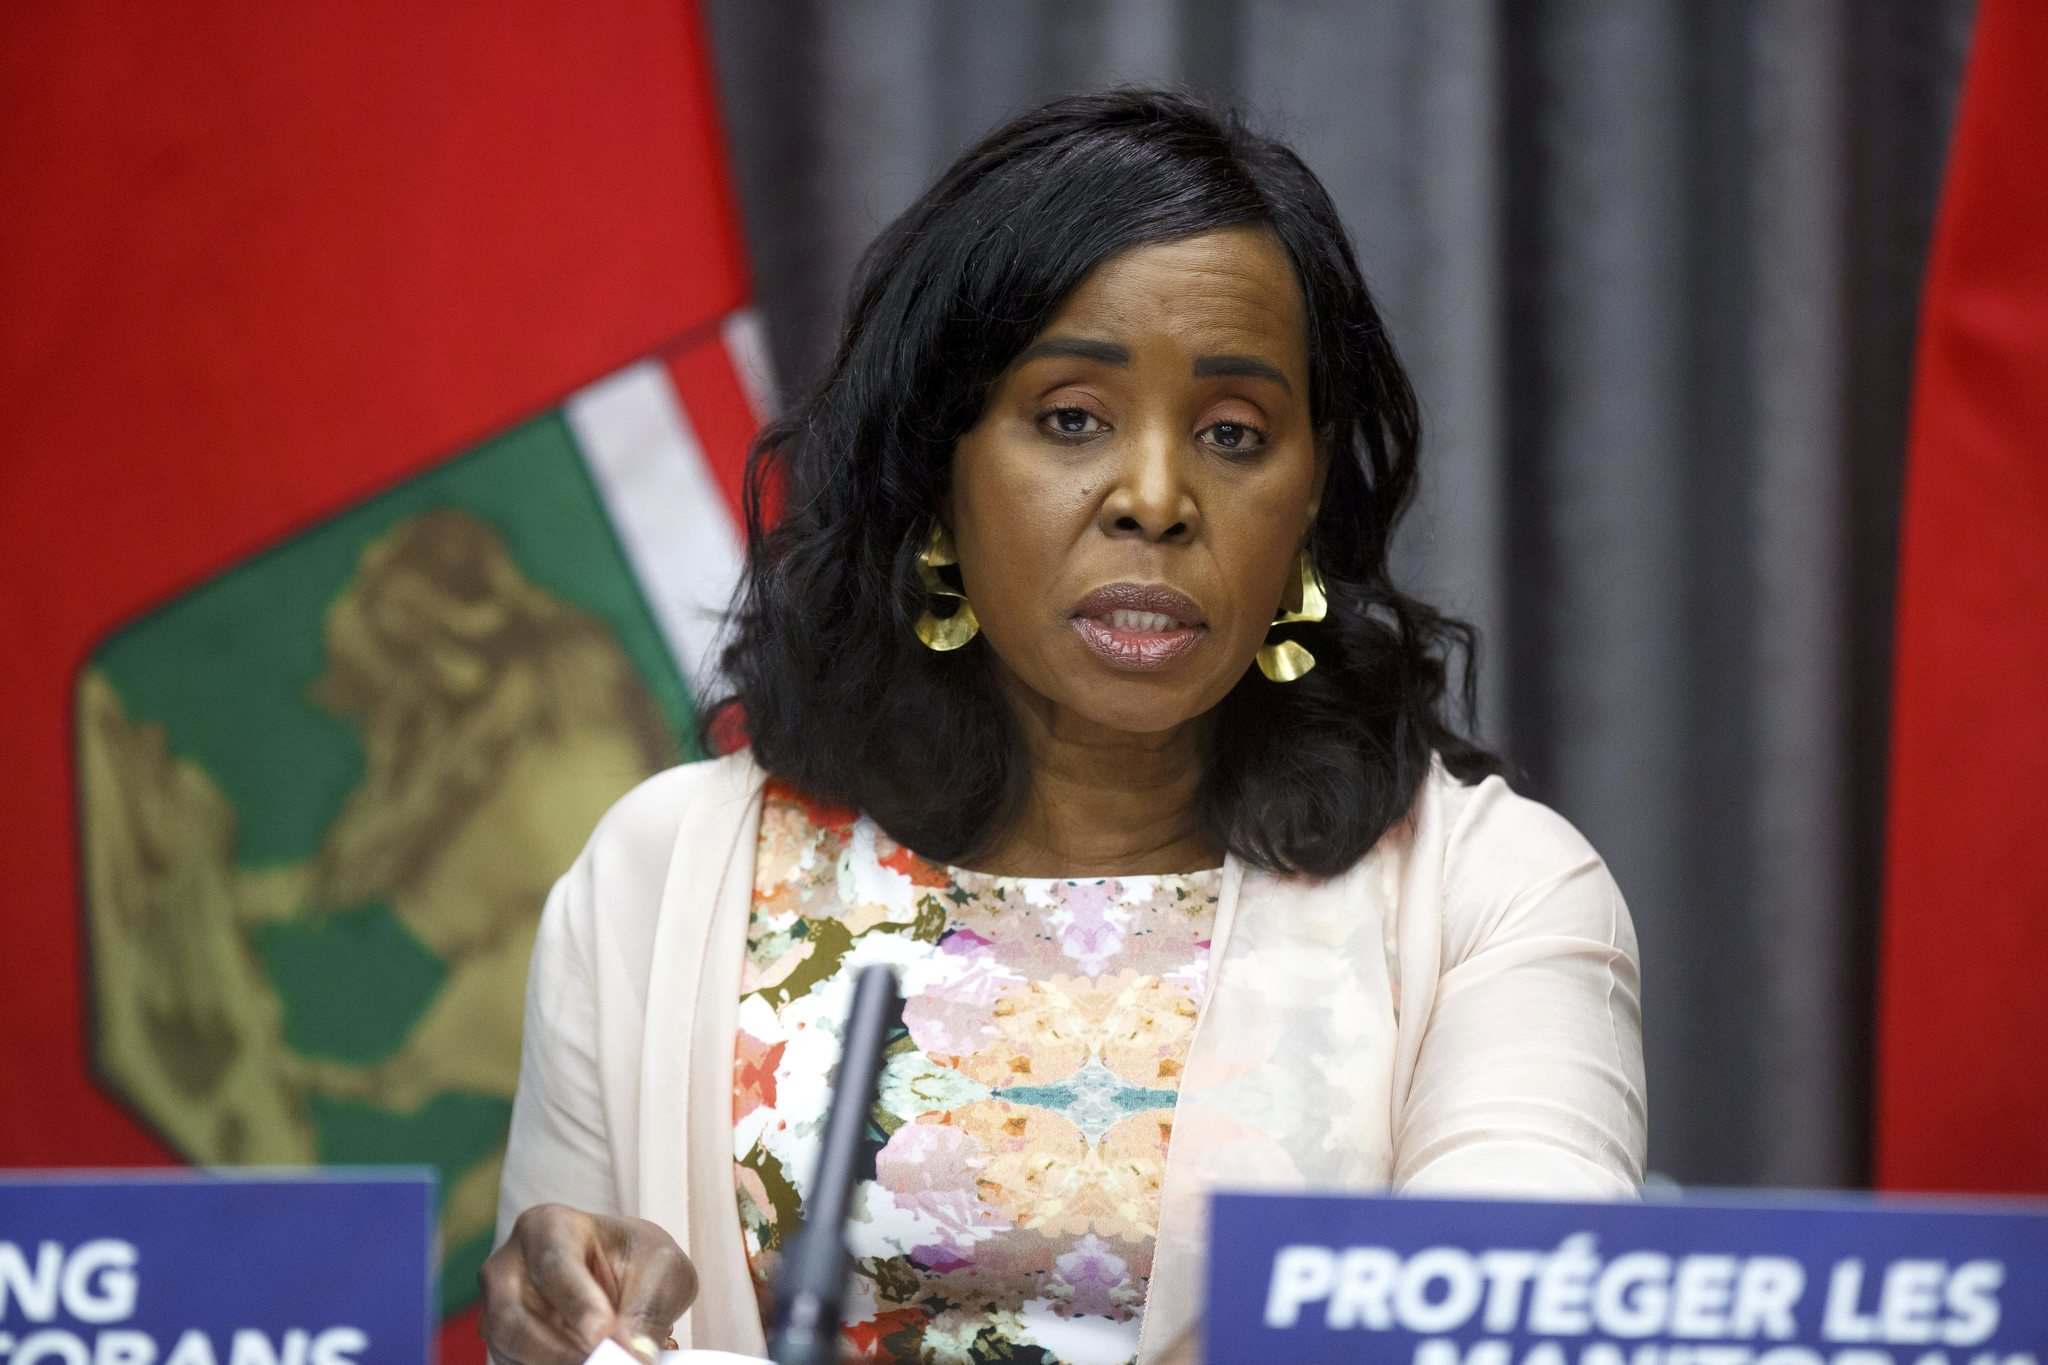 MIKE DEAL / WINNIPEG FREE PRESS FILES</p><p>Health Minister Audrey Gordon has declined to answer direct questions about Manitoba's COVID-19 triage protocol.</p>